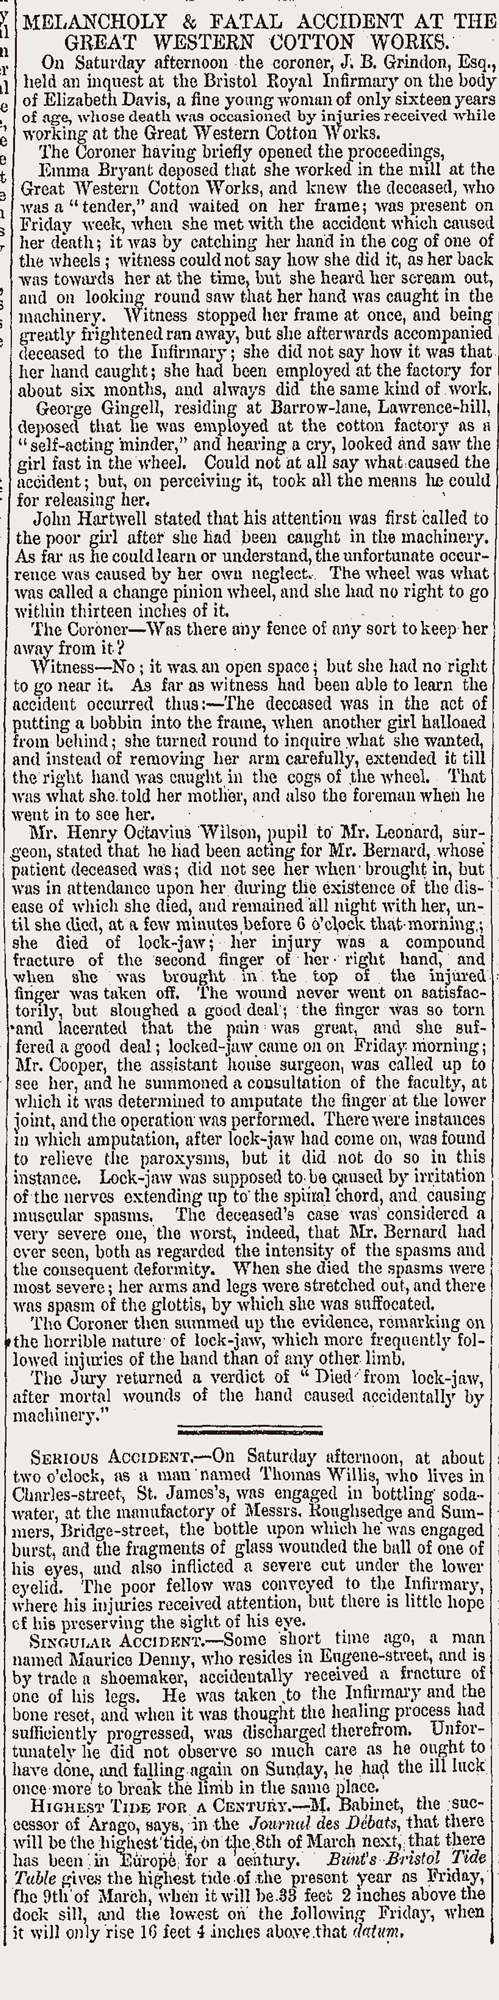 Newspaper report of fatal accident at the Great Western Cotton Works